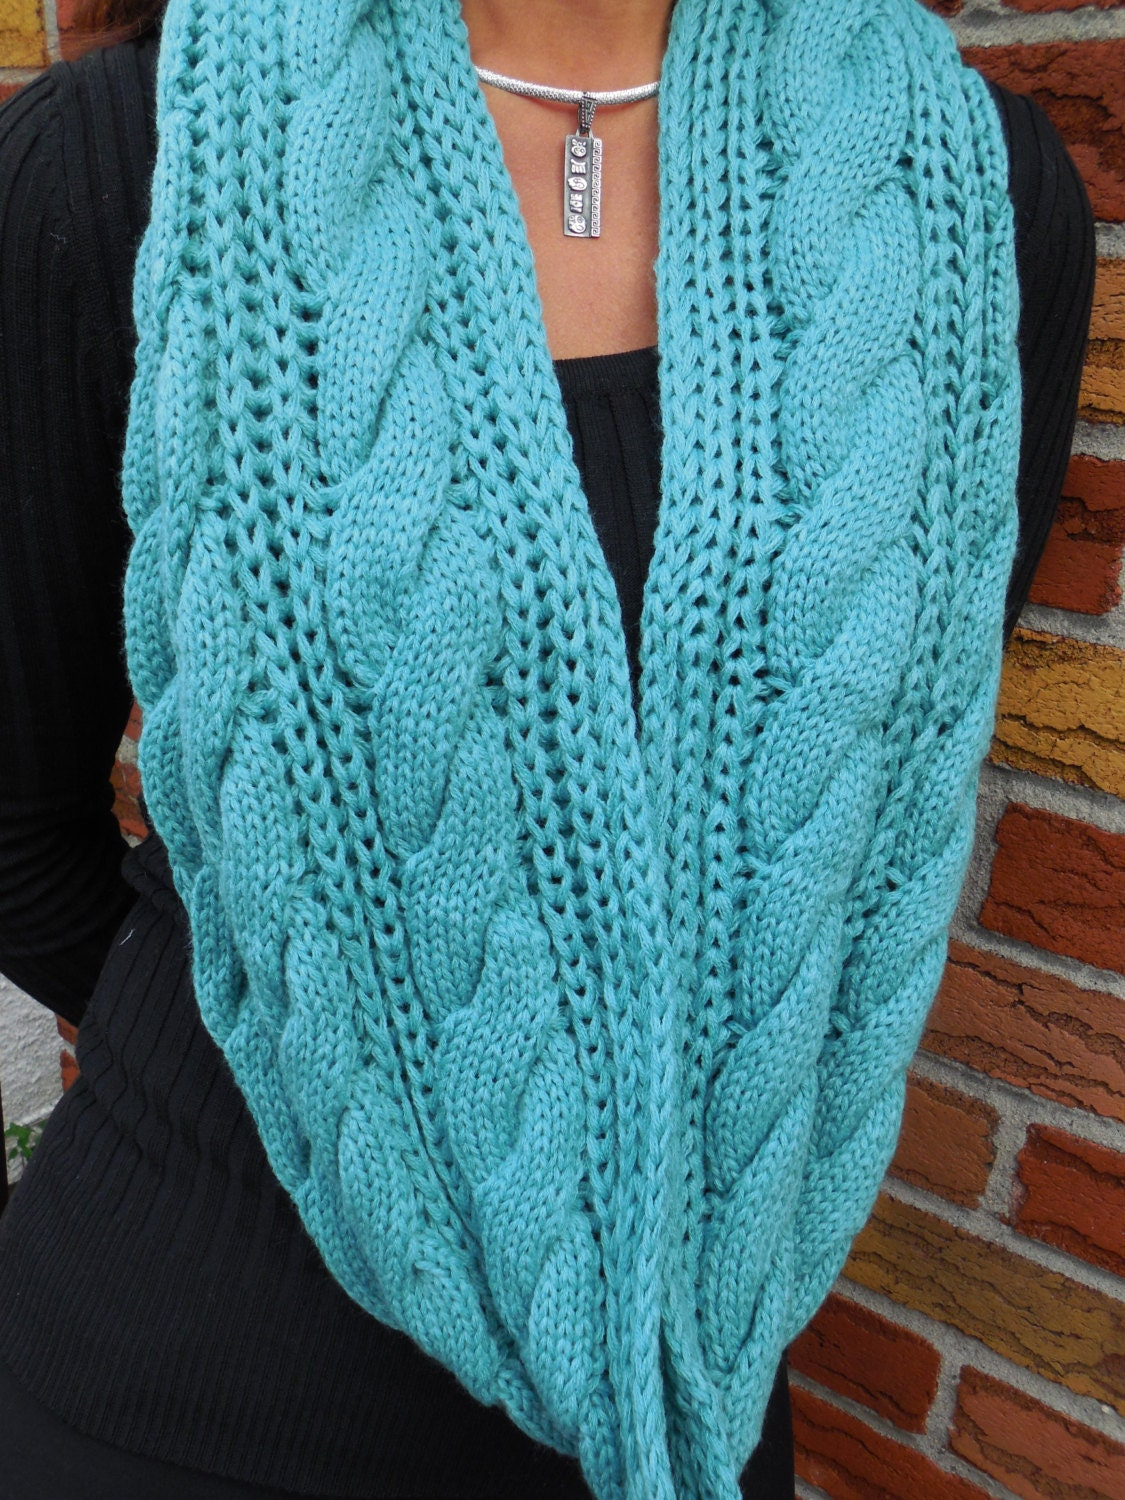 Edit Article How to Knit an Infinity Scarf. Five Methods: Simple Infinity Scarf Infinity Scarf in the Round Hood cowl Simple Infinity Scarf from Your Own Pattern Abbreviations Community Q&A Knitting an infinity scarf can be done in several ways. You can knit a large and long scarf .